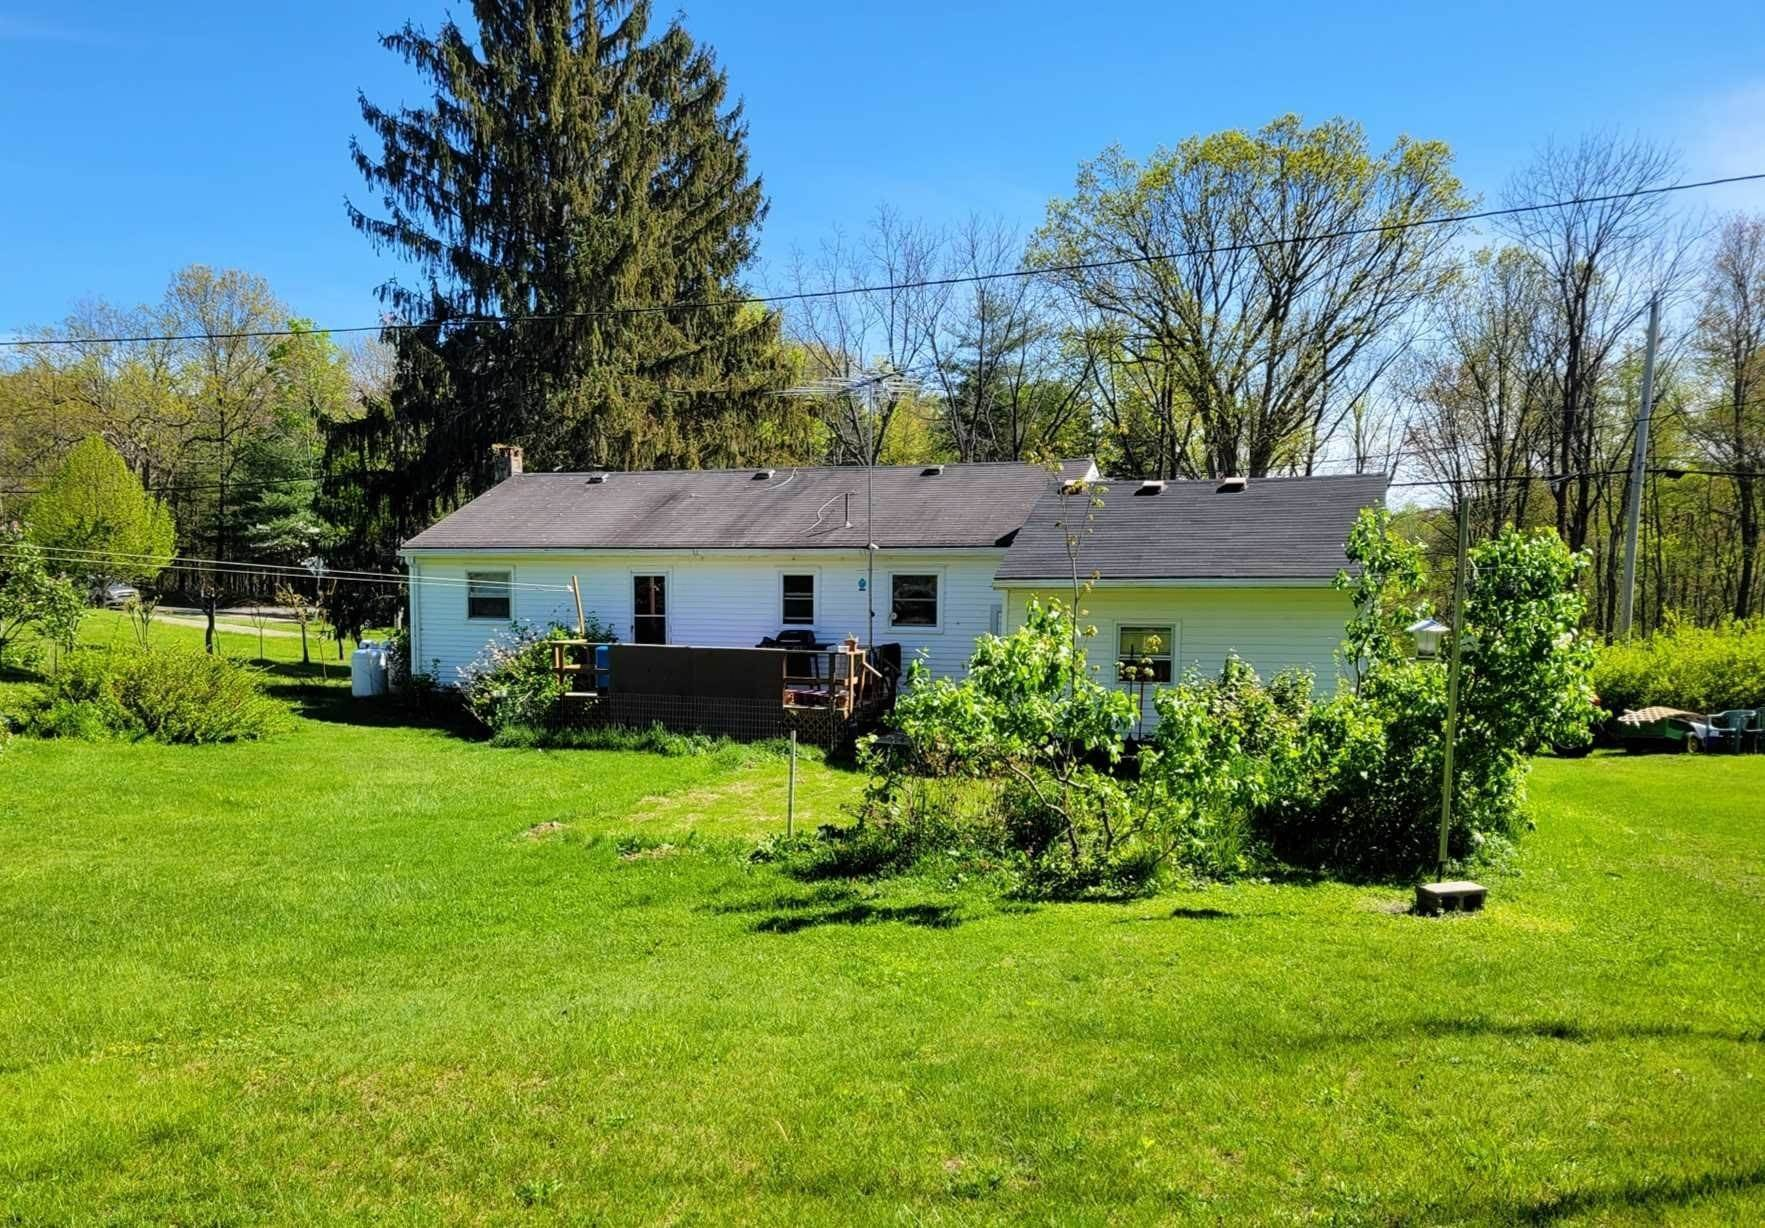 Single Family Homes for Sale at 411 EAST KERLEY CORNERS Clermont, New York 12583 United States